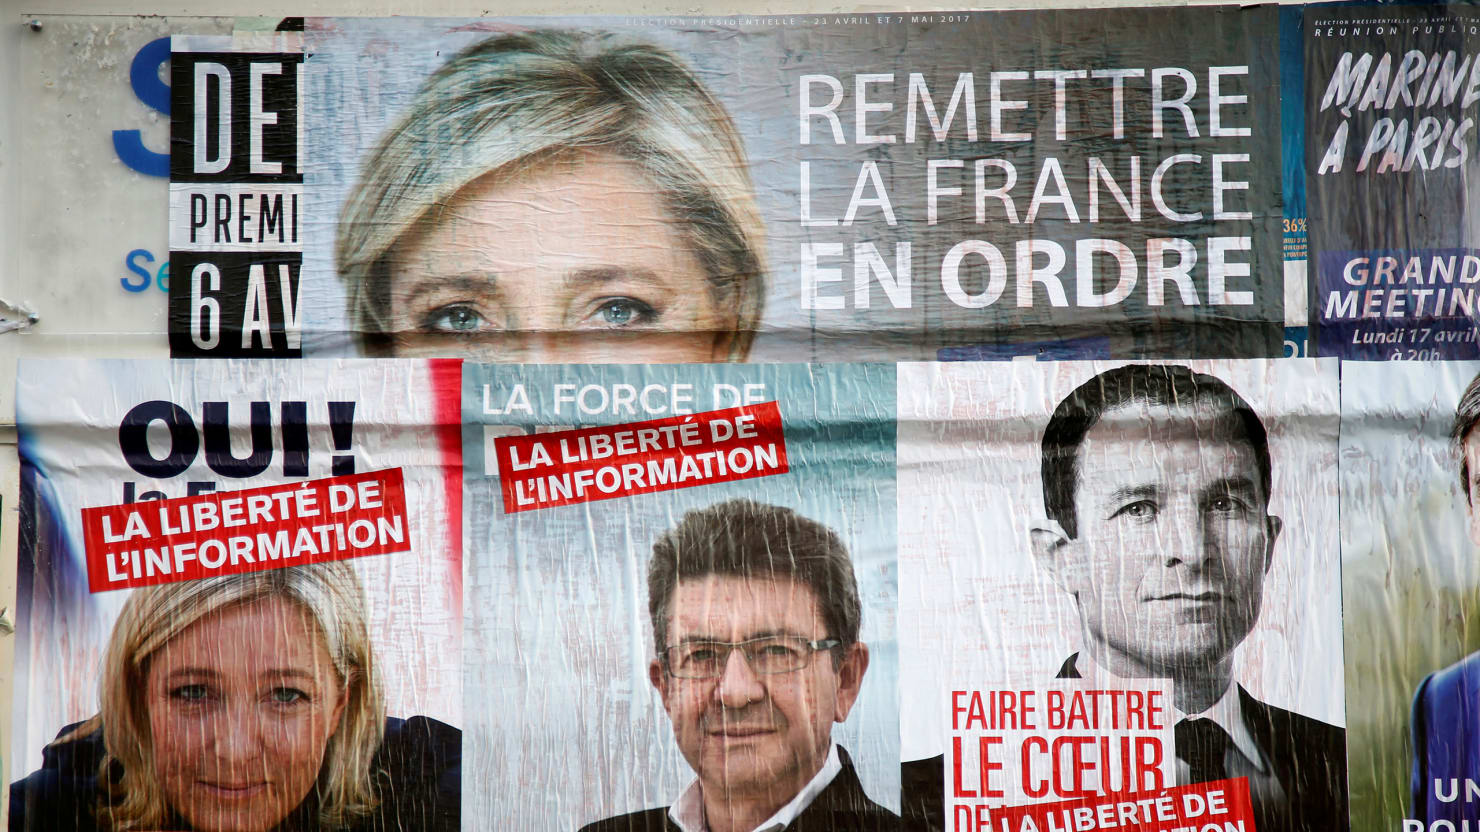 The Insane French Elections That Could F*ck Us All